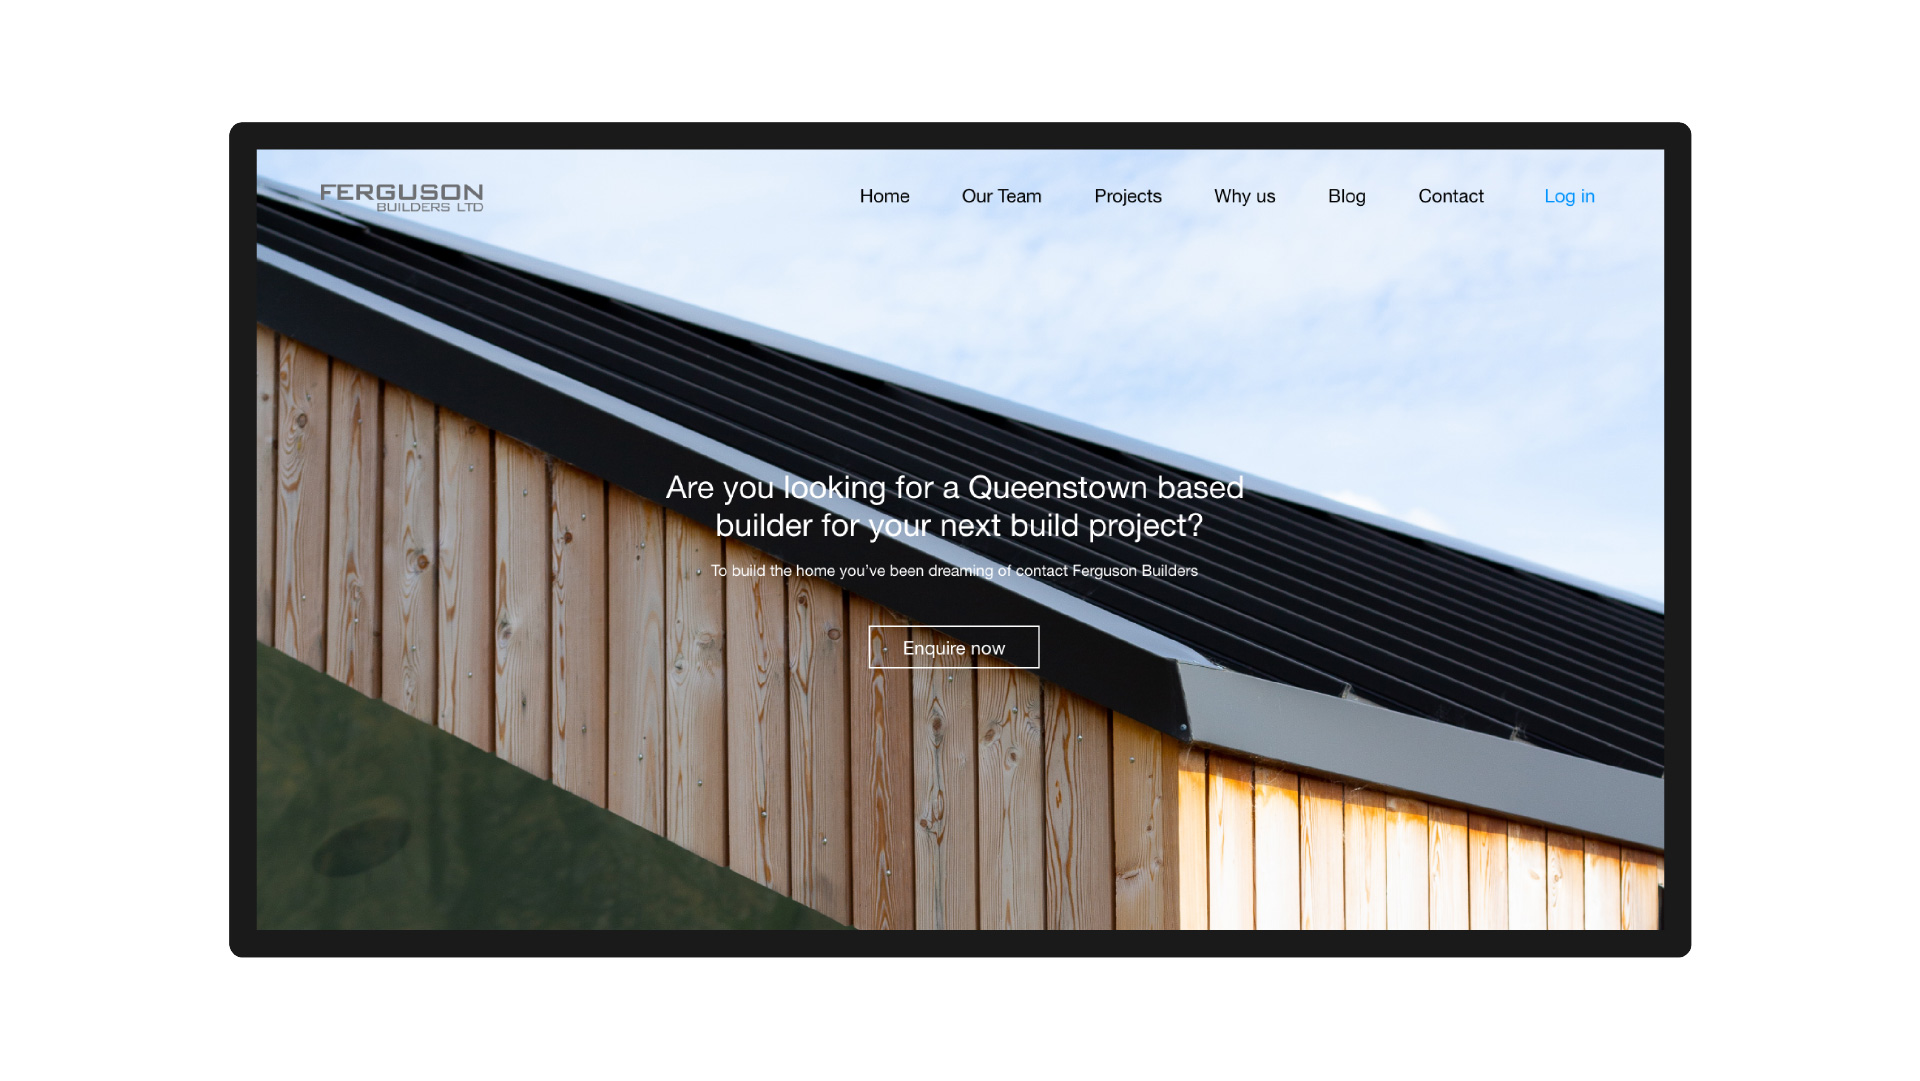 ferguson builders desktop website